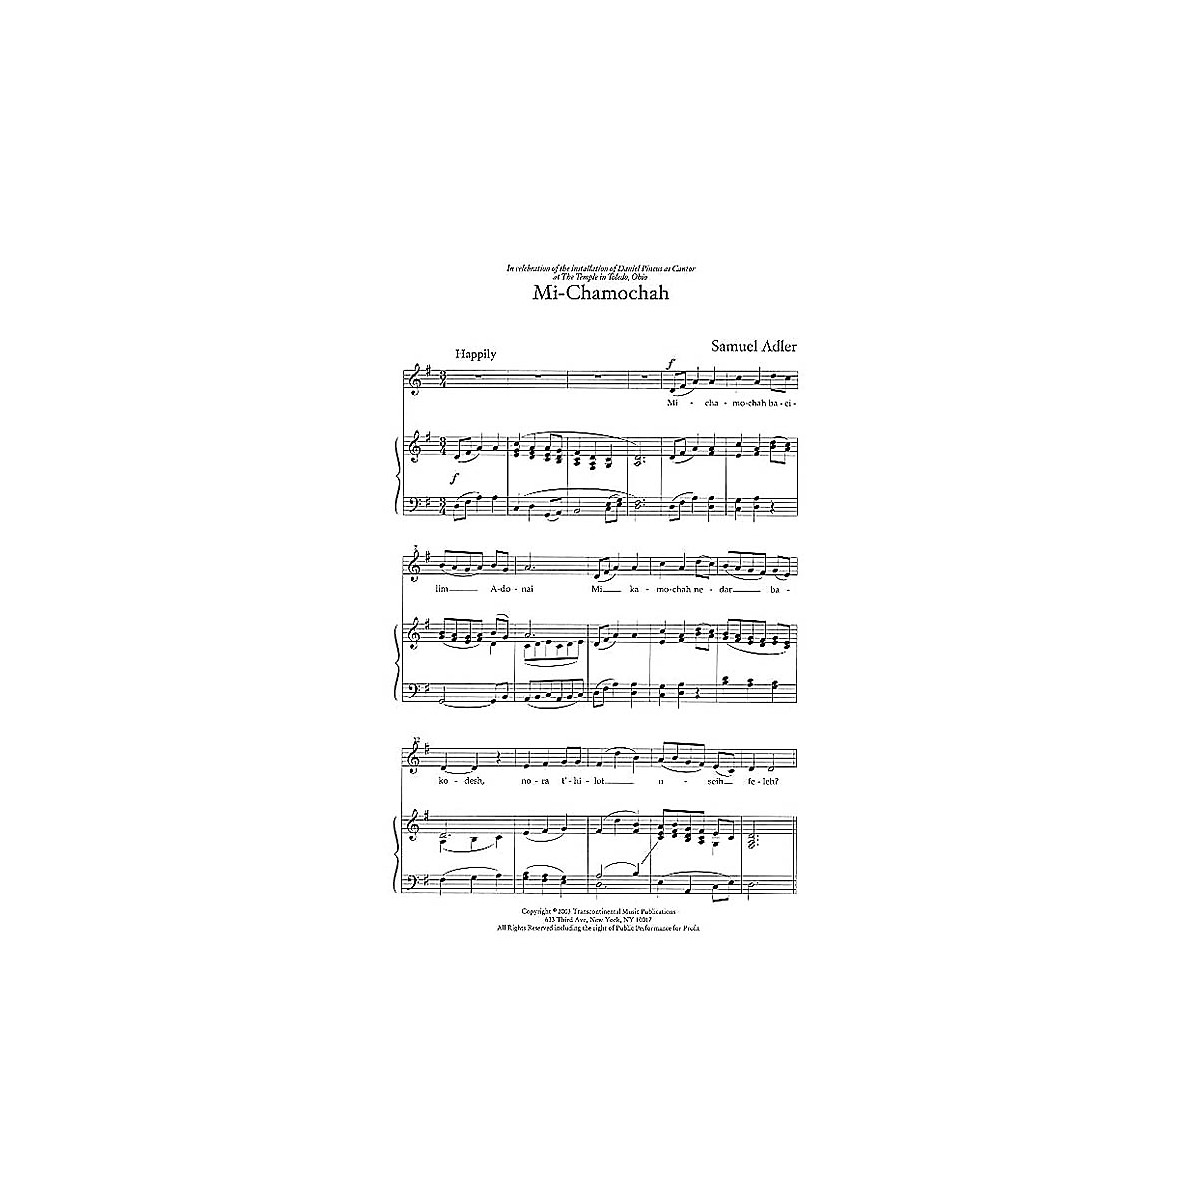 Transcontinental Music Three Liturgical Settings SAB composed by Samuel Adler